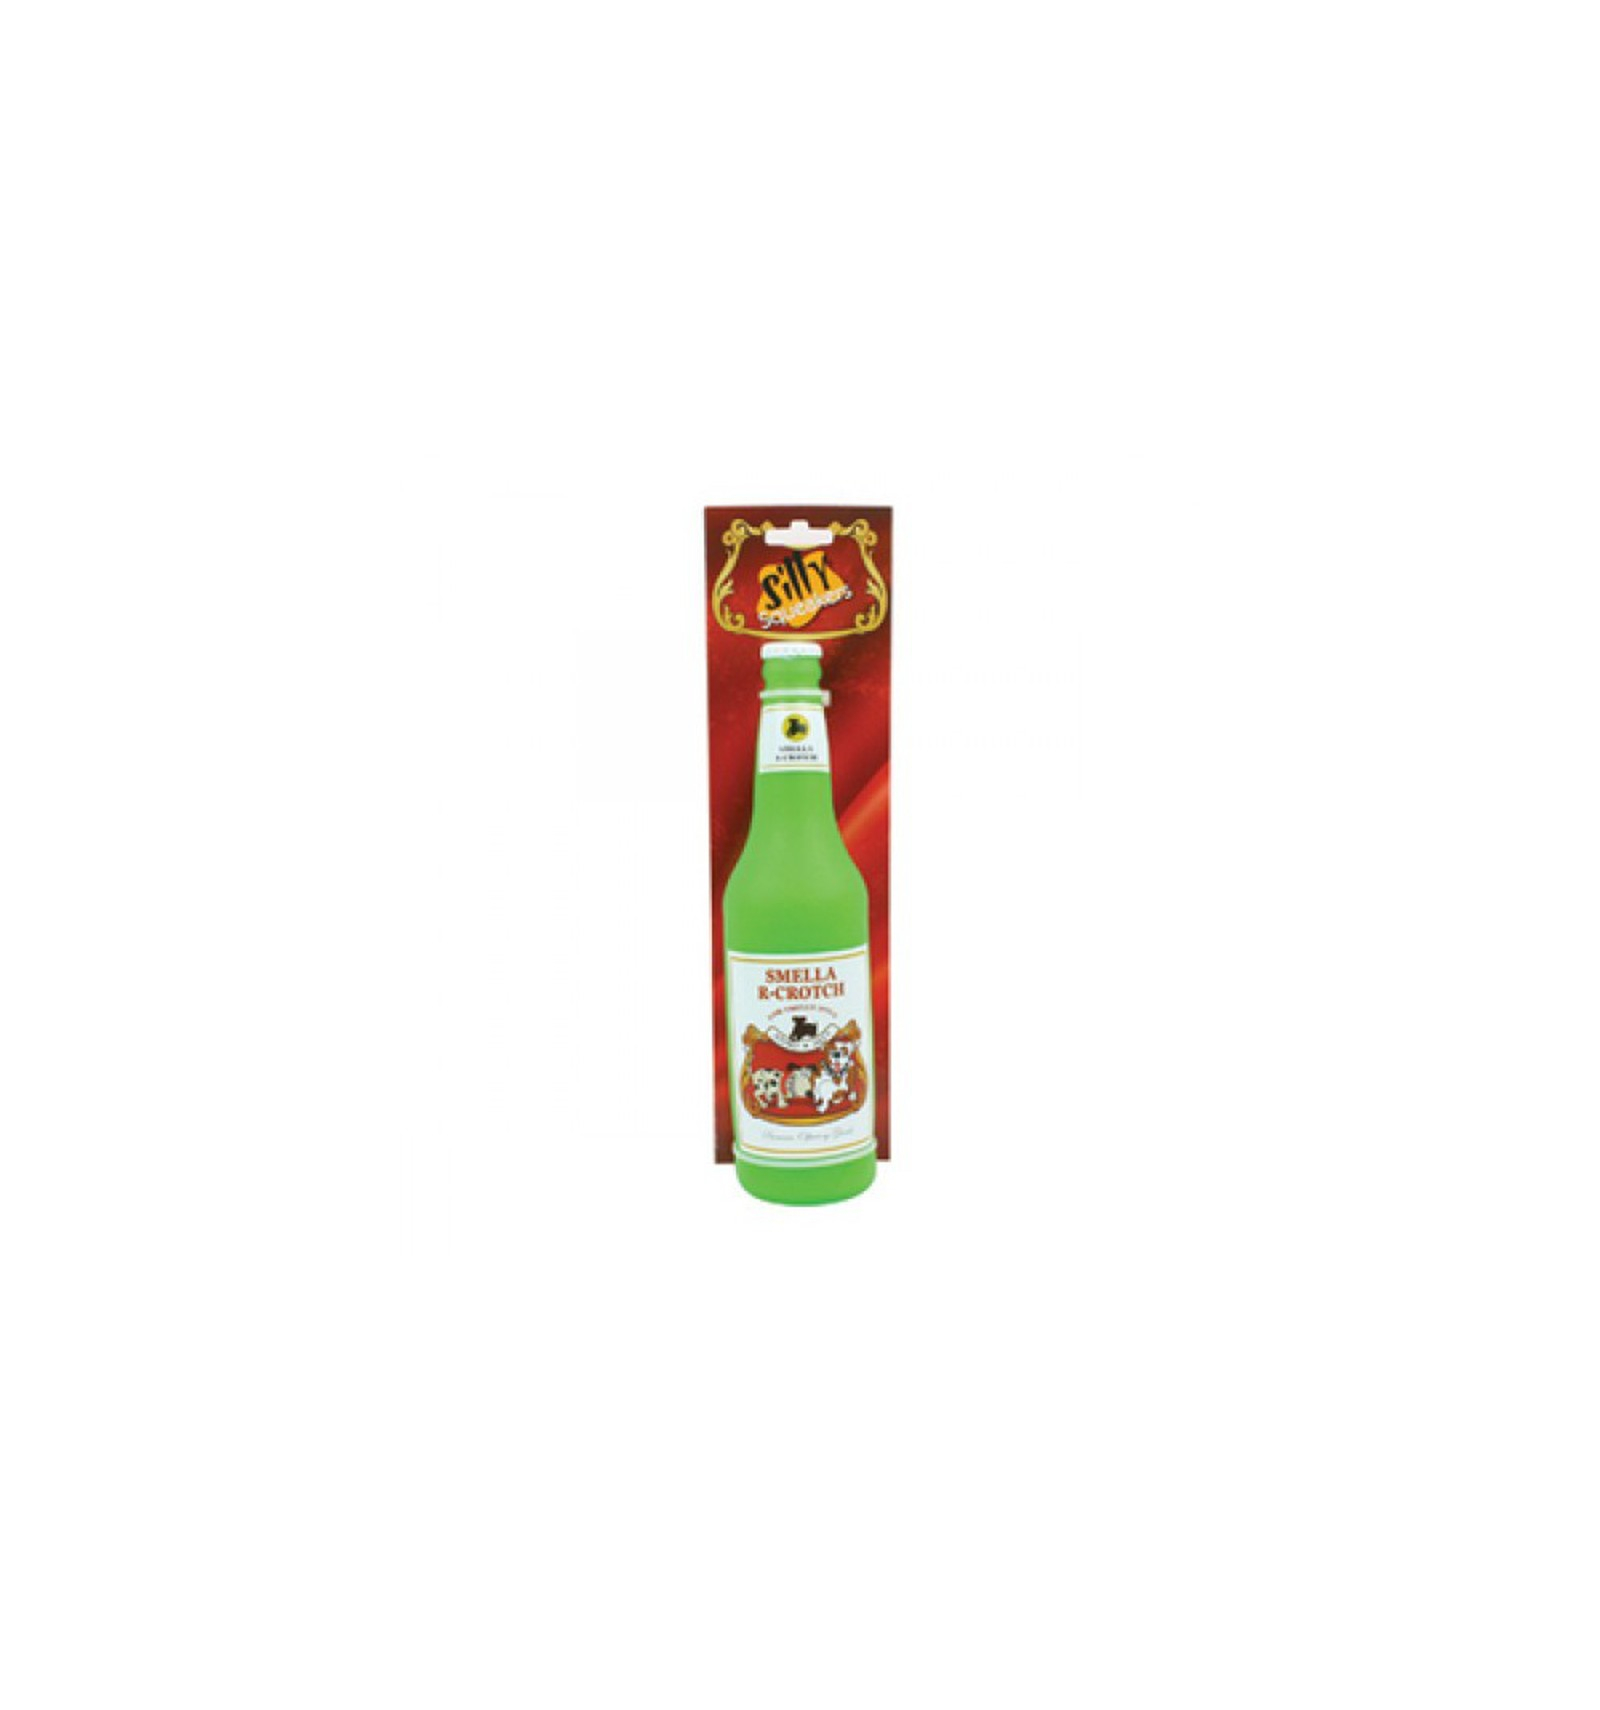 TUFFY SILLY SQUEAKER BEER BOTTLE SMELLARCROTCH IN LATTICE